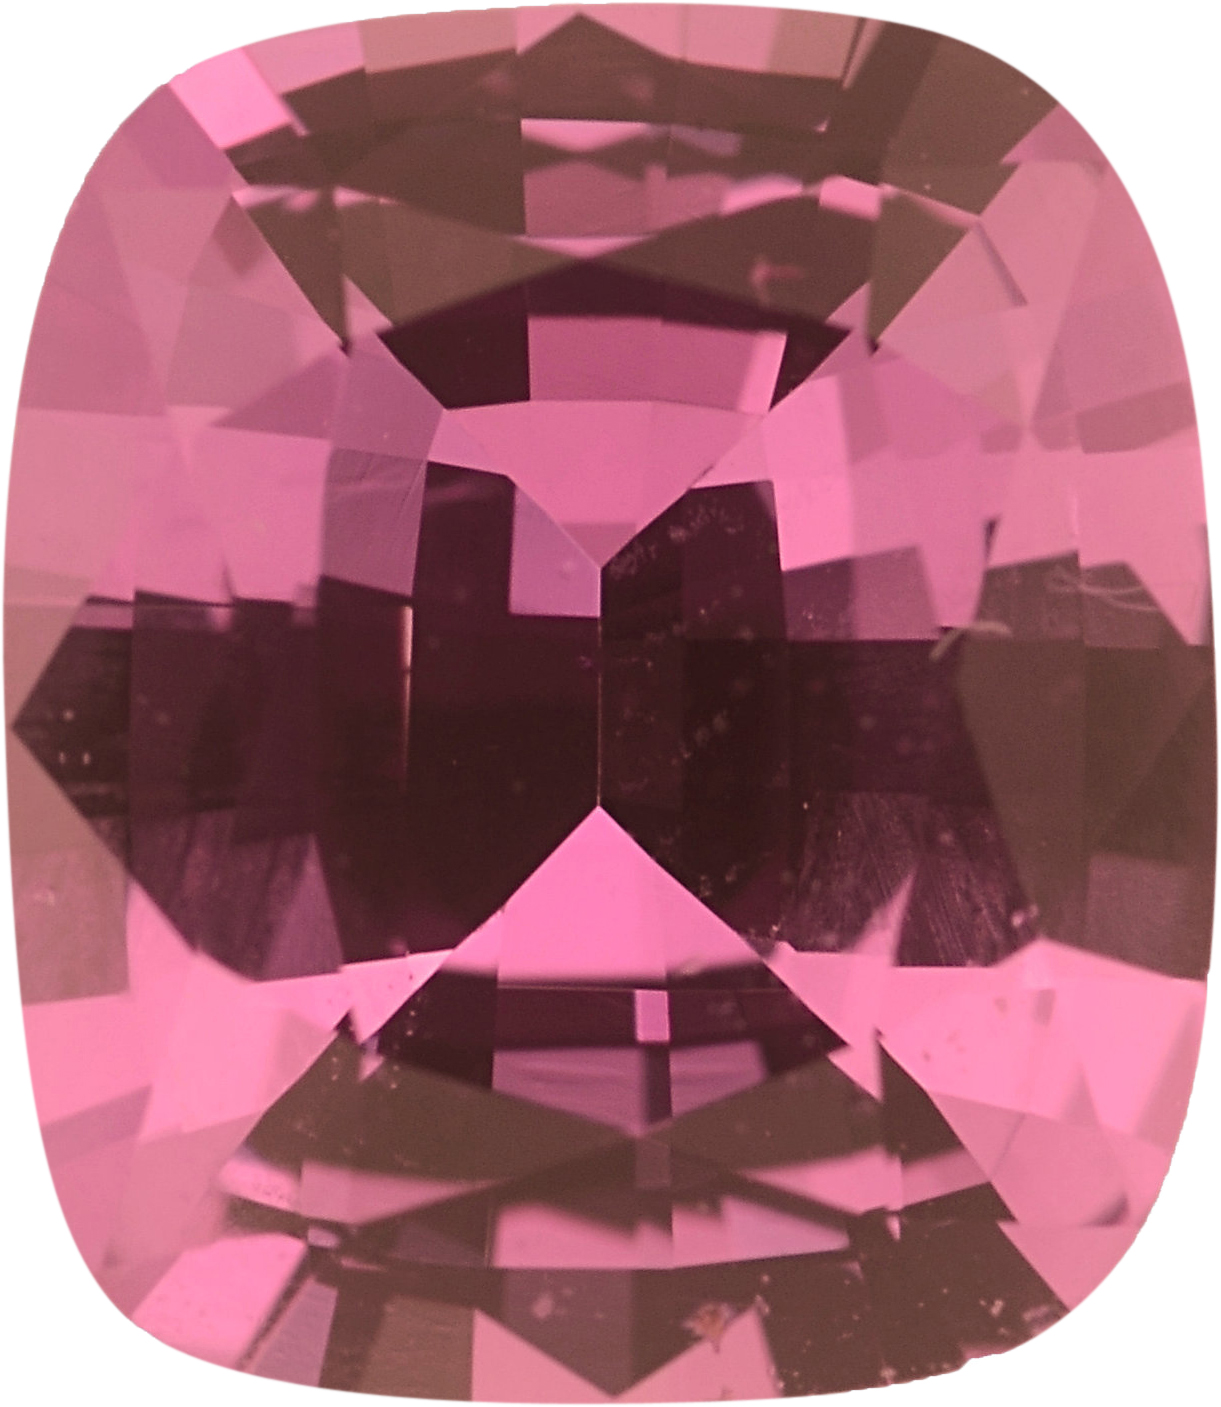 7.21 x 6.26 mm, Unheated Pink Loose Sapphire Gemstone in Antique Cushion Cut, Purplish Red, 1.44 carats